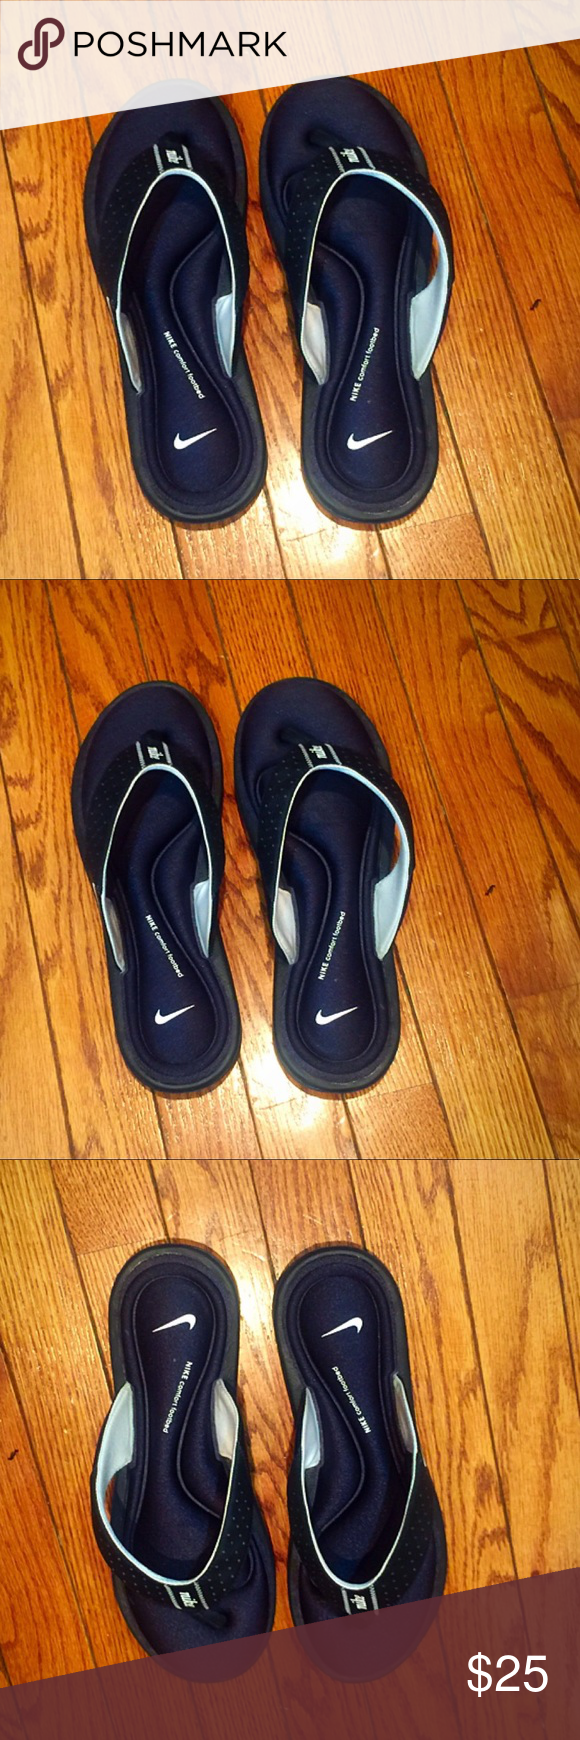 sold comfort ecomm la shoes shop of our footbed collection product nike boutique comforter copy flip revente flop